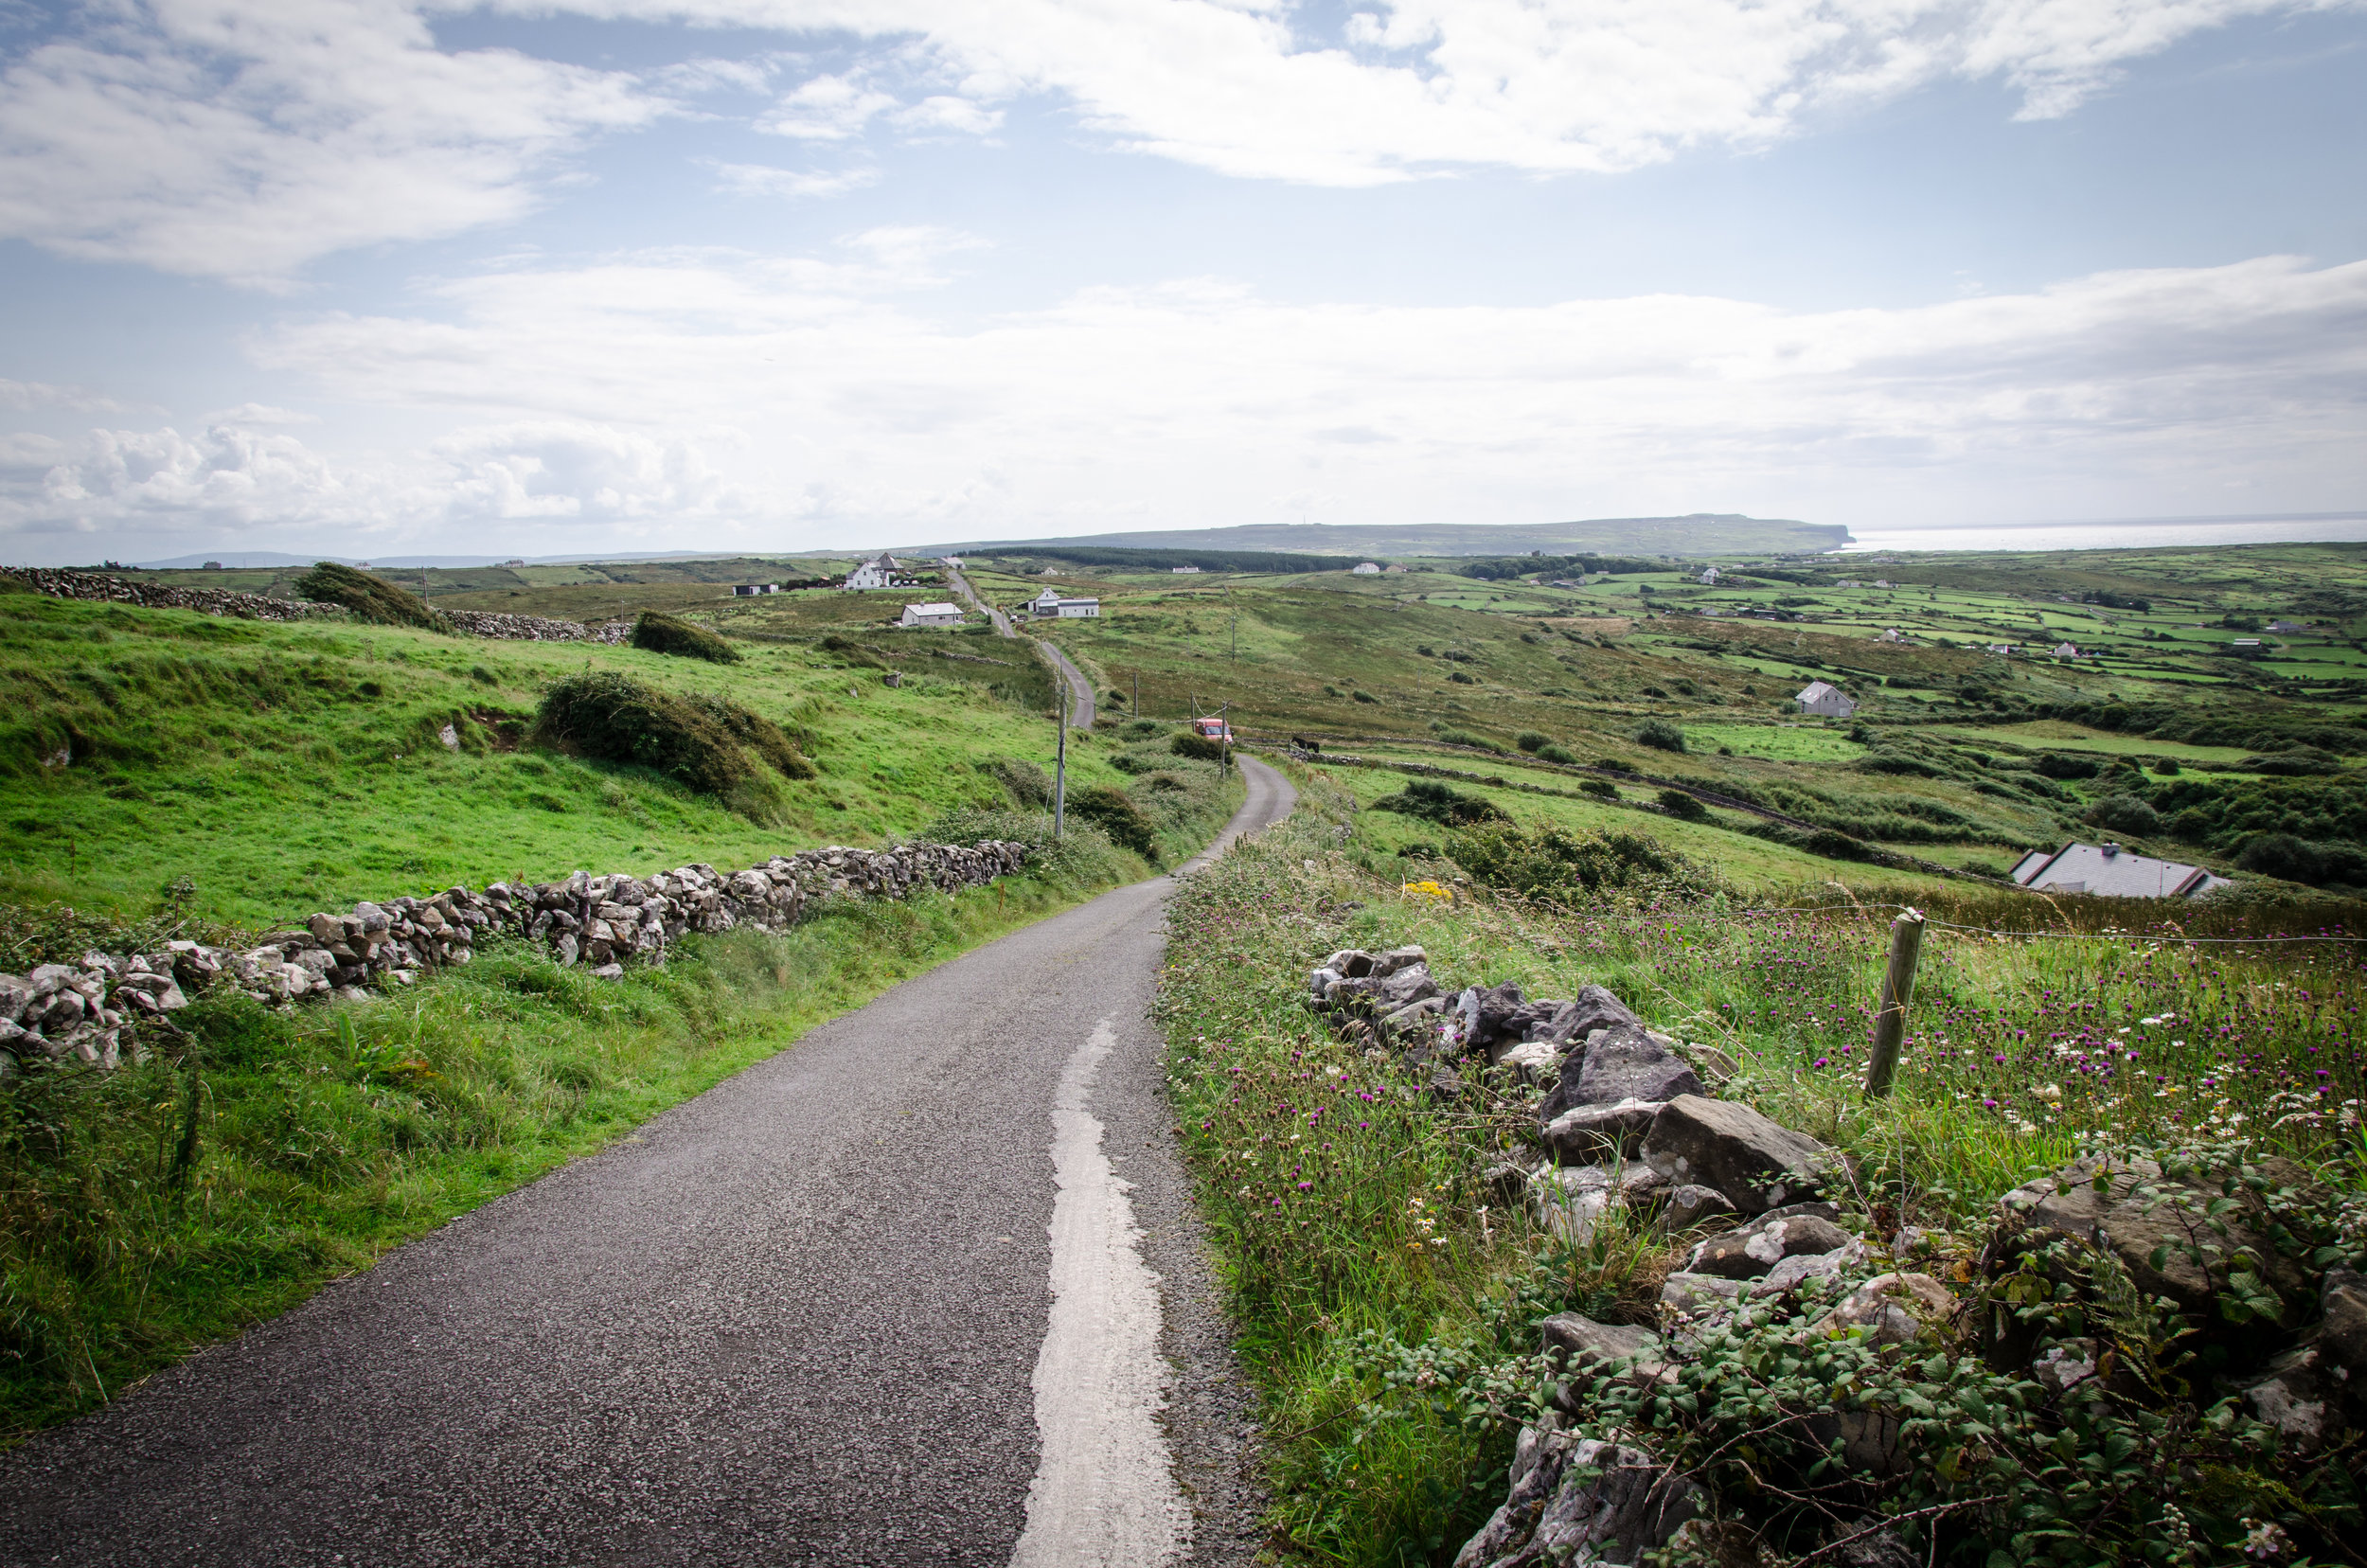 The lush and rugged coastline just north of Doolin, Ireland at the end of an incident-free summer roaming Europe.